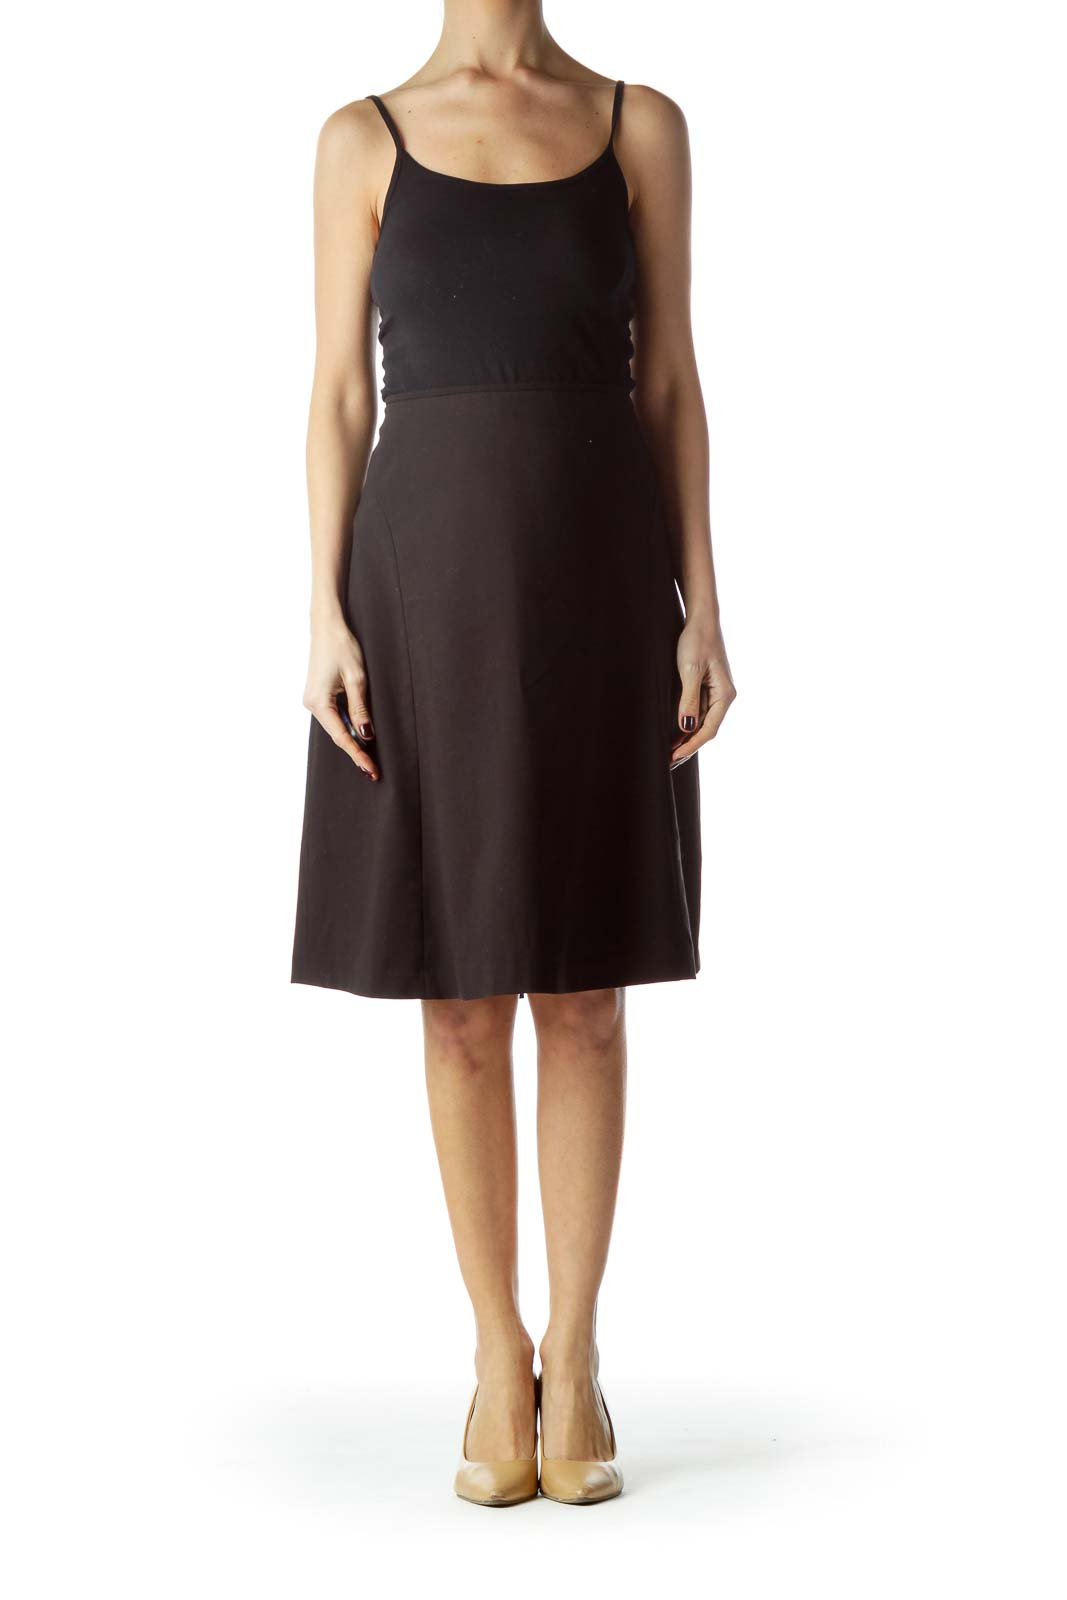 Black Zippered Flared Skirt with Slip